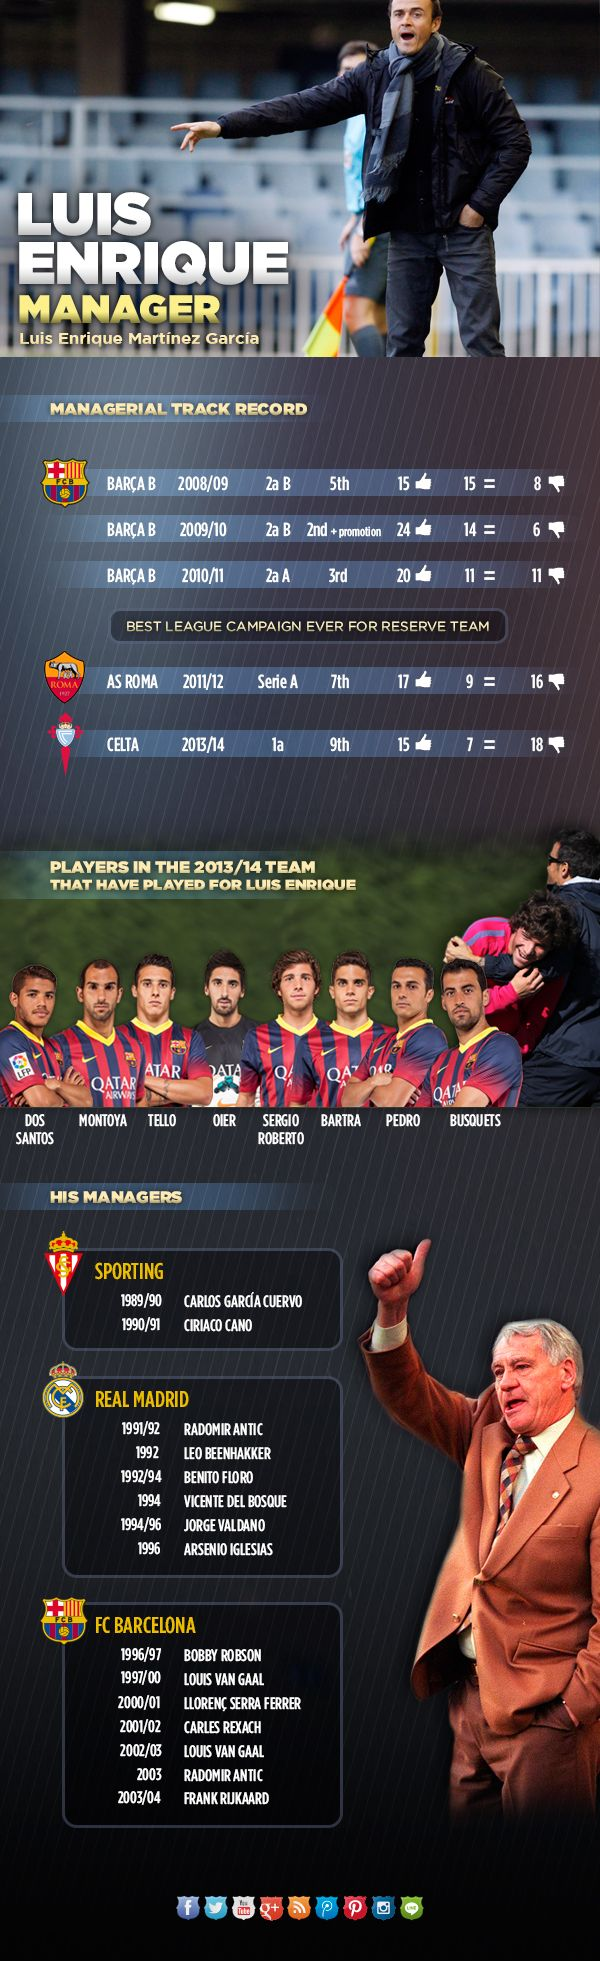 Luis Enrique's managerial career in numbers #LuisEnrique #Coach #FCBarcelona #LuchoisBack